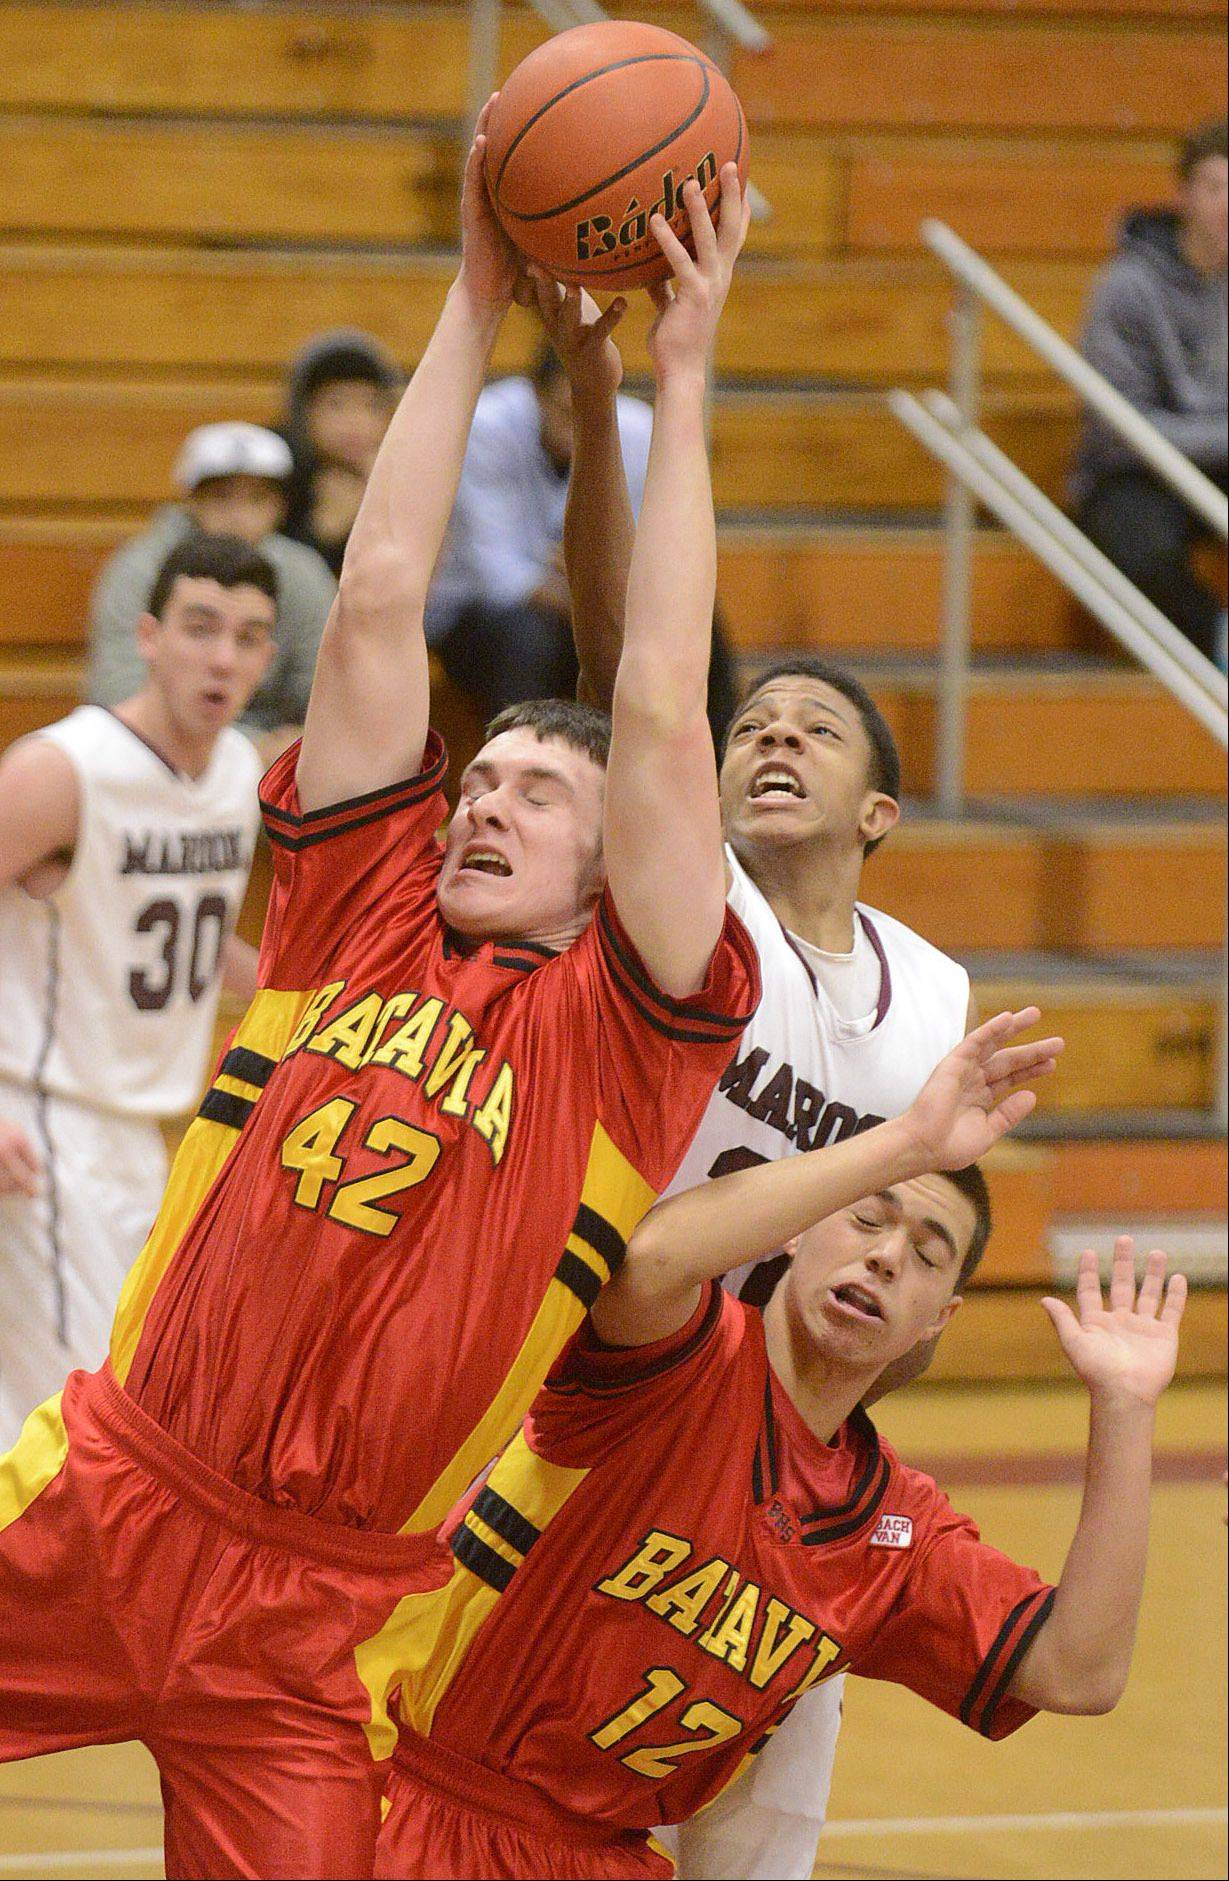 Batavia's Ryan Olson (42) and Elgin's Donte Harper leap for a rebound over Batavia's Canaan Coffey (12) during Saturday's game.